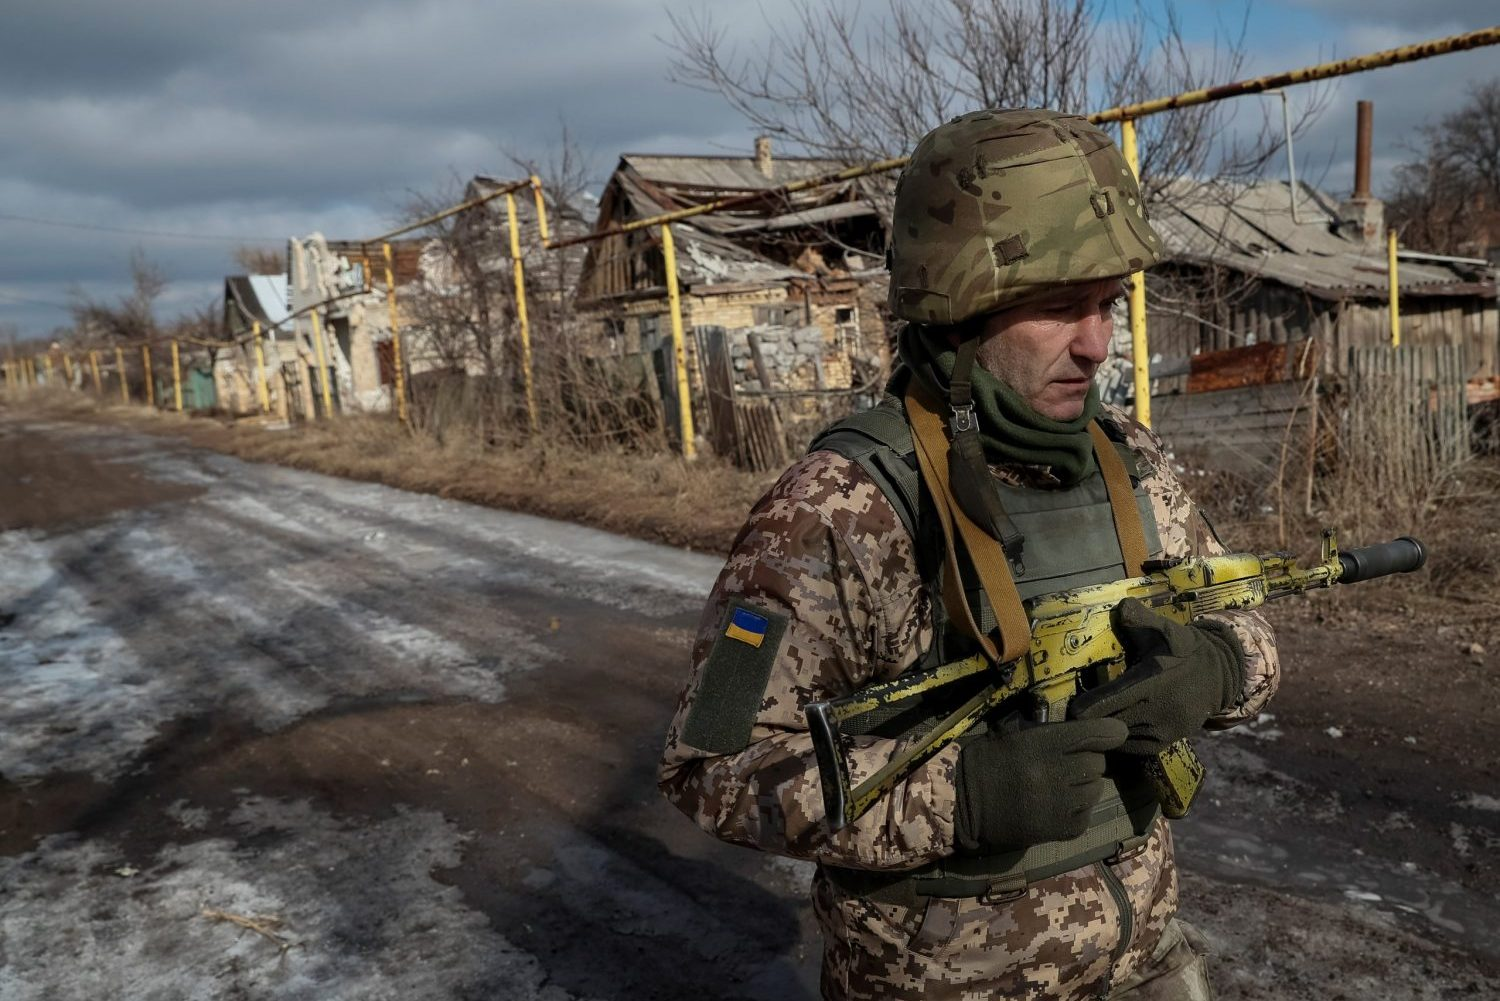 Putin forever: Ukraine faces the prospect of endless imperial aggression